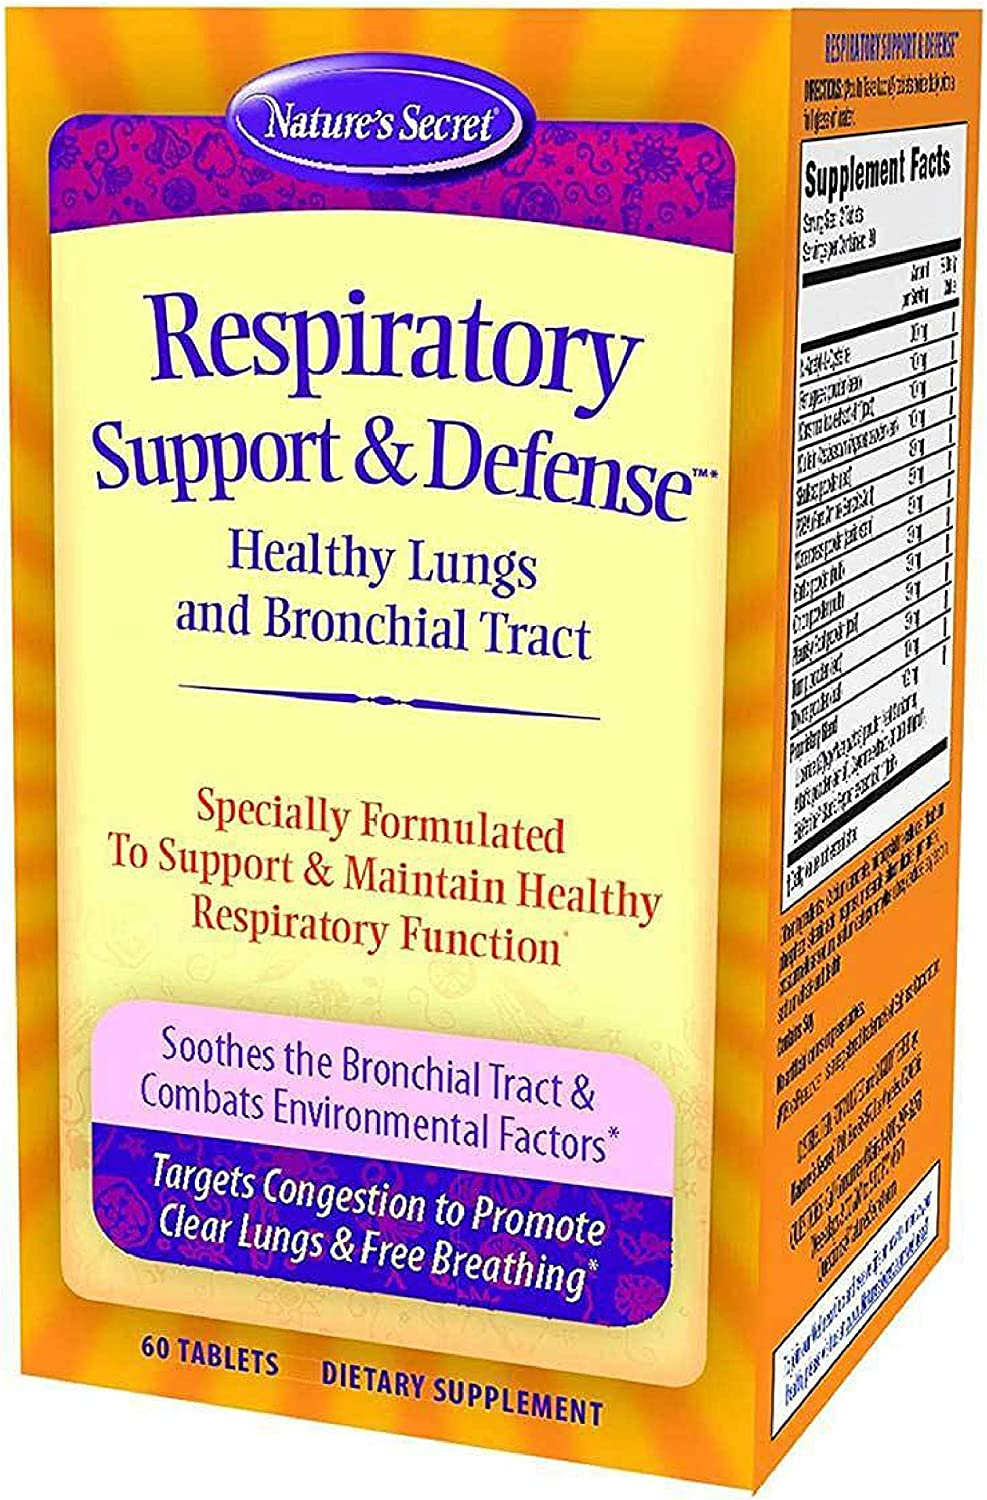 Nature's Secret Respiratory Support & Defense Tabs-60 ct